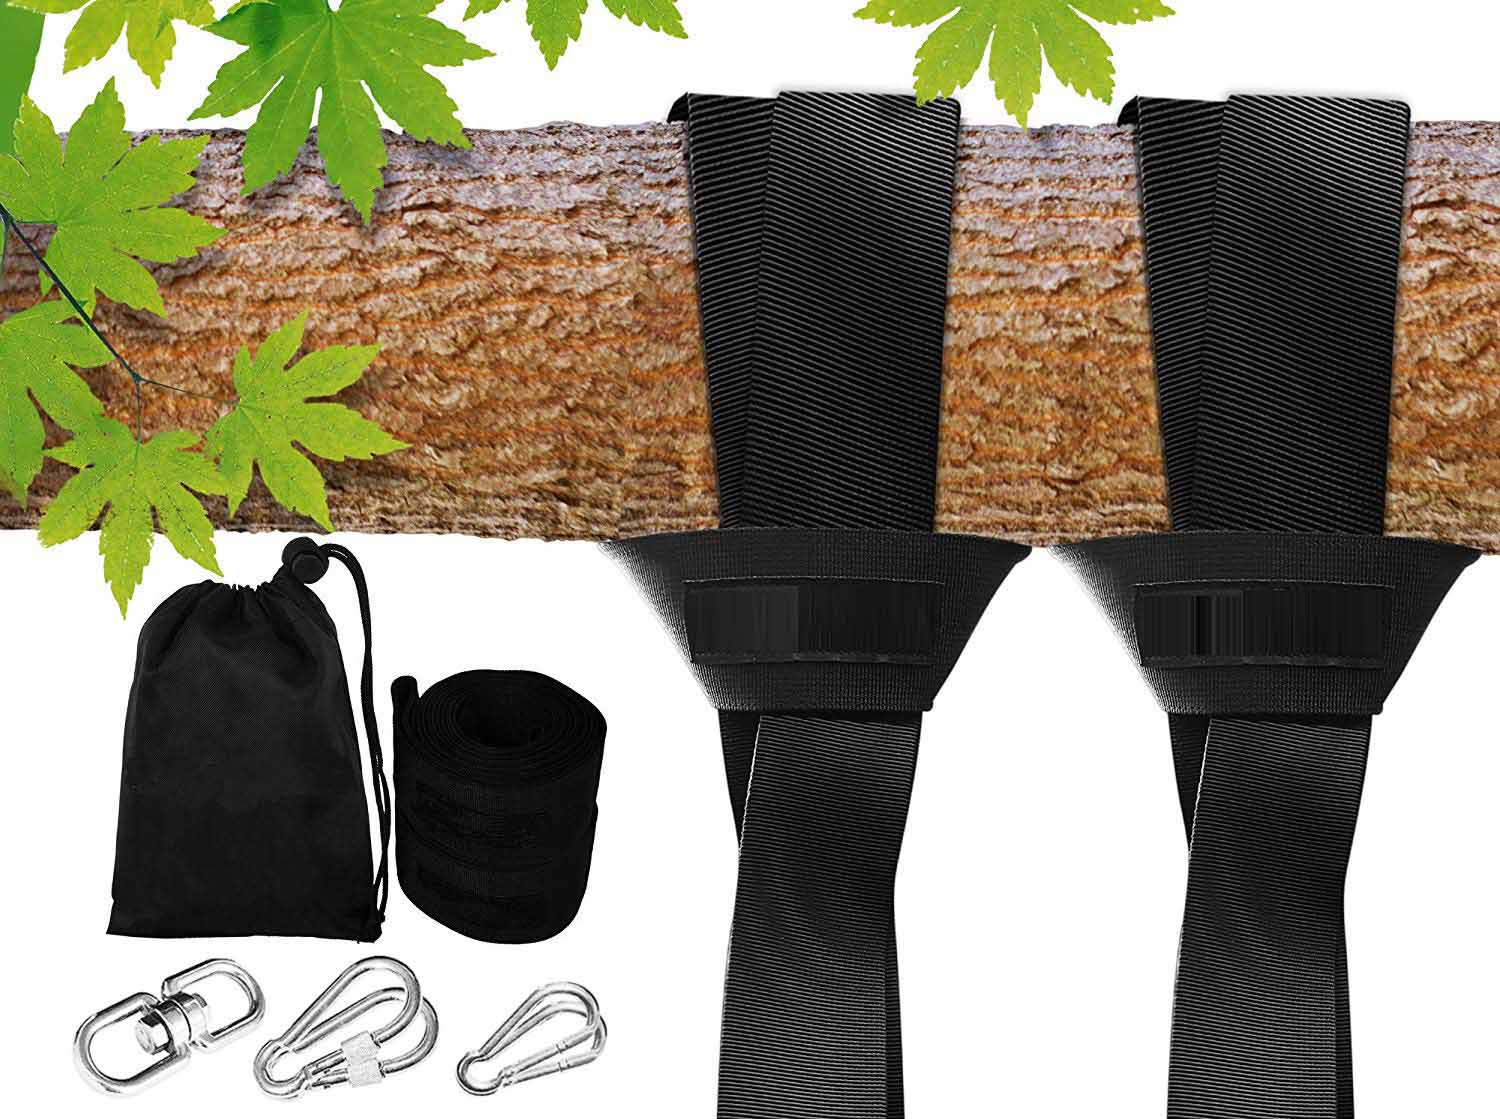 2 Tree Protectors Holds 2200 LBS Extra Long 10 ft Straps Tree Swing Hanging Kit Hammock /& Tire Swing Tree Swings for Swing Sets Set Of 2 2 Carabiners with Locking System /& Video Instructions